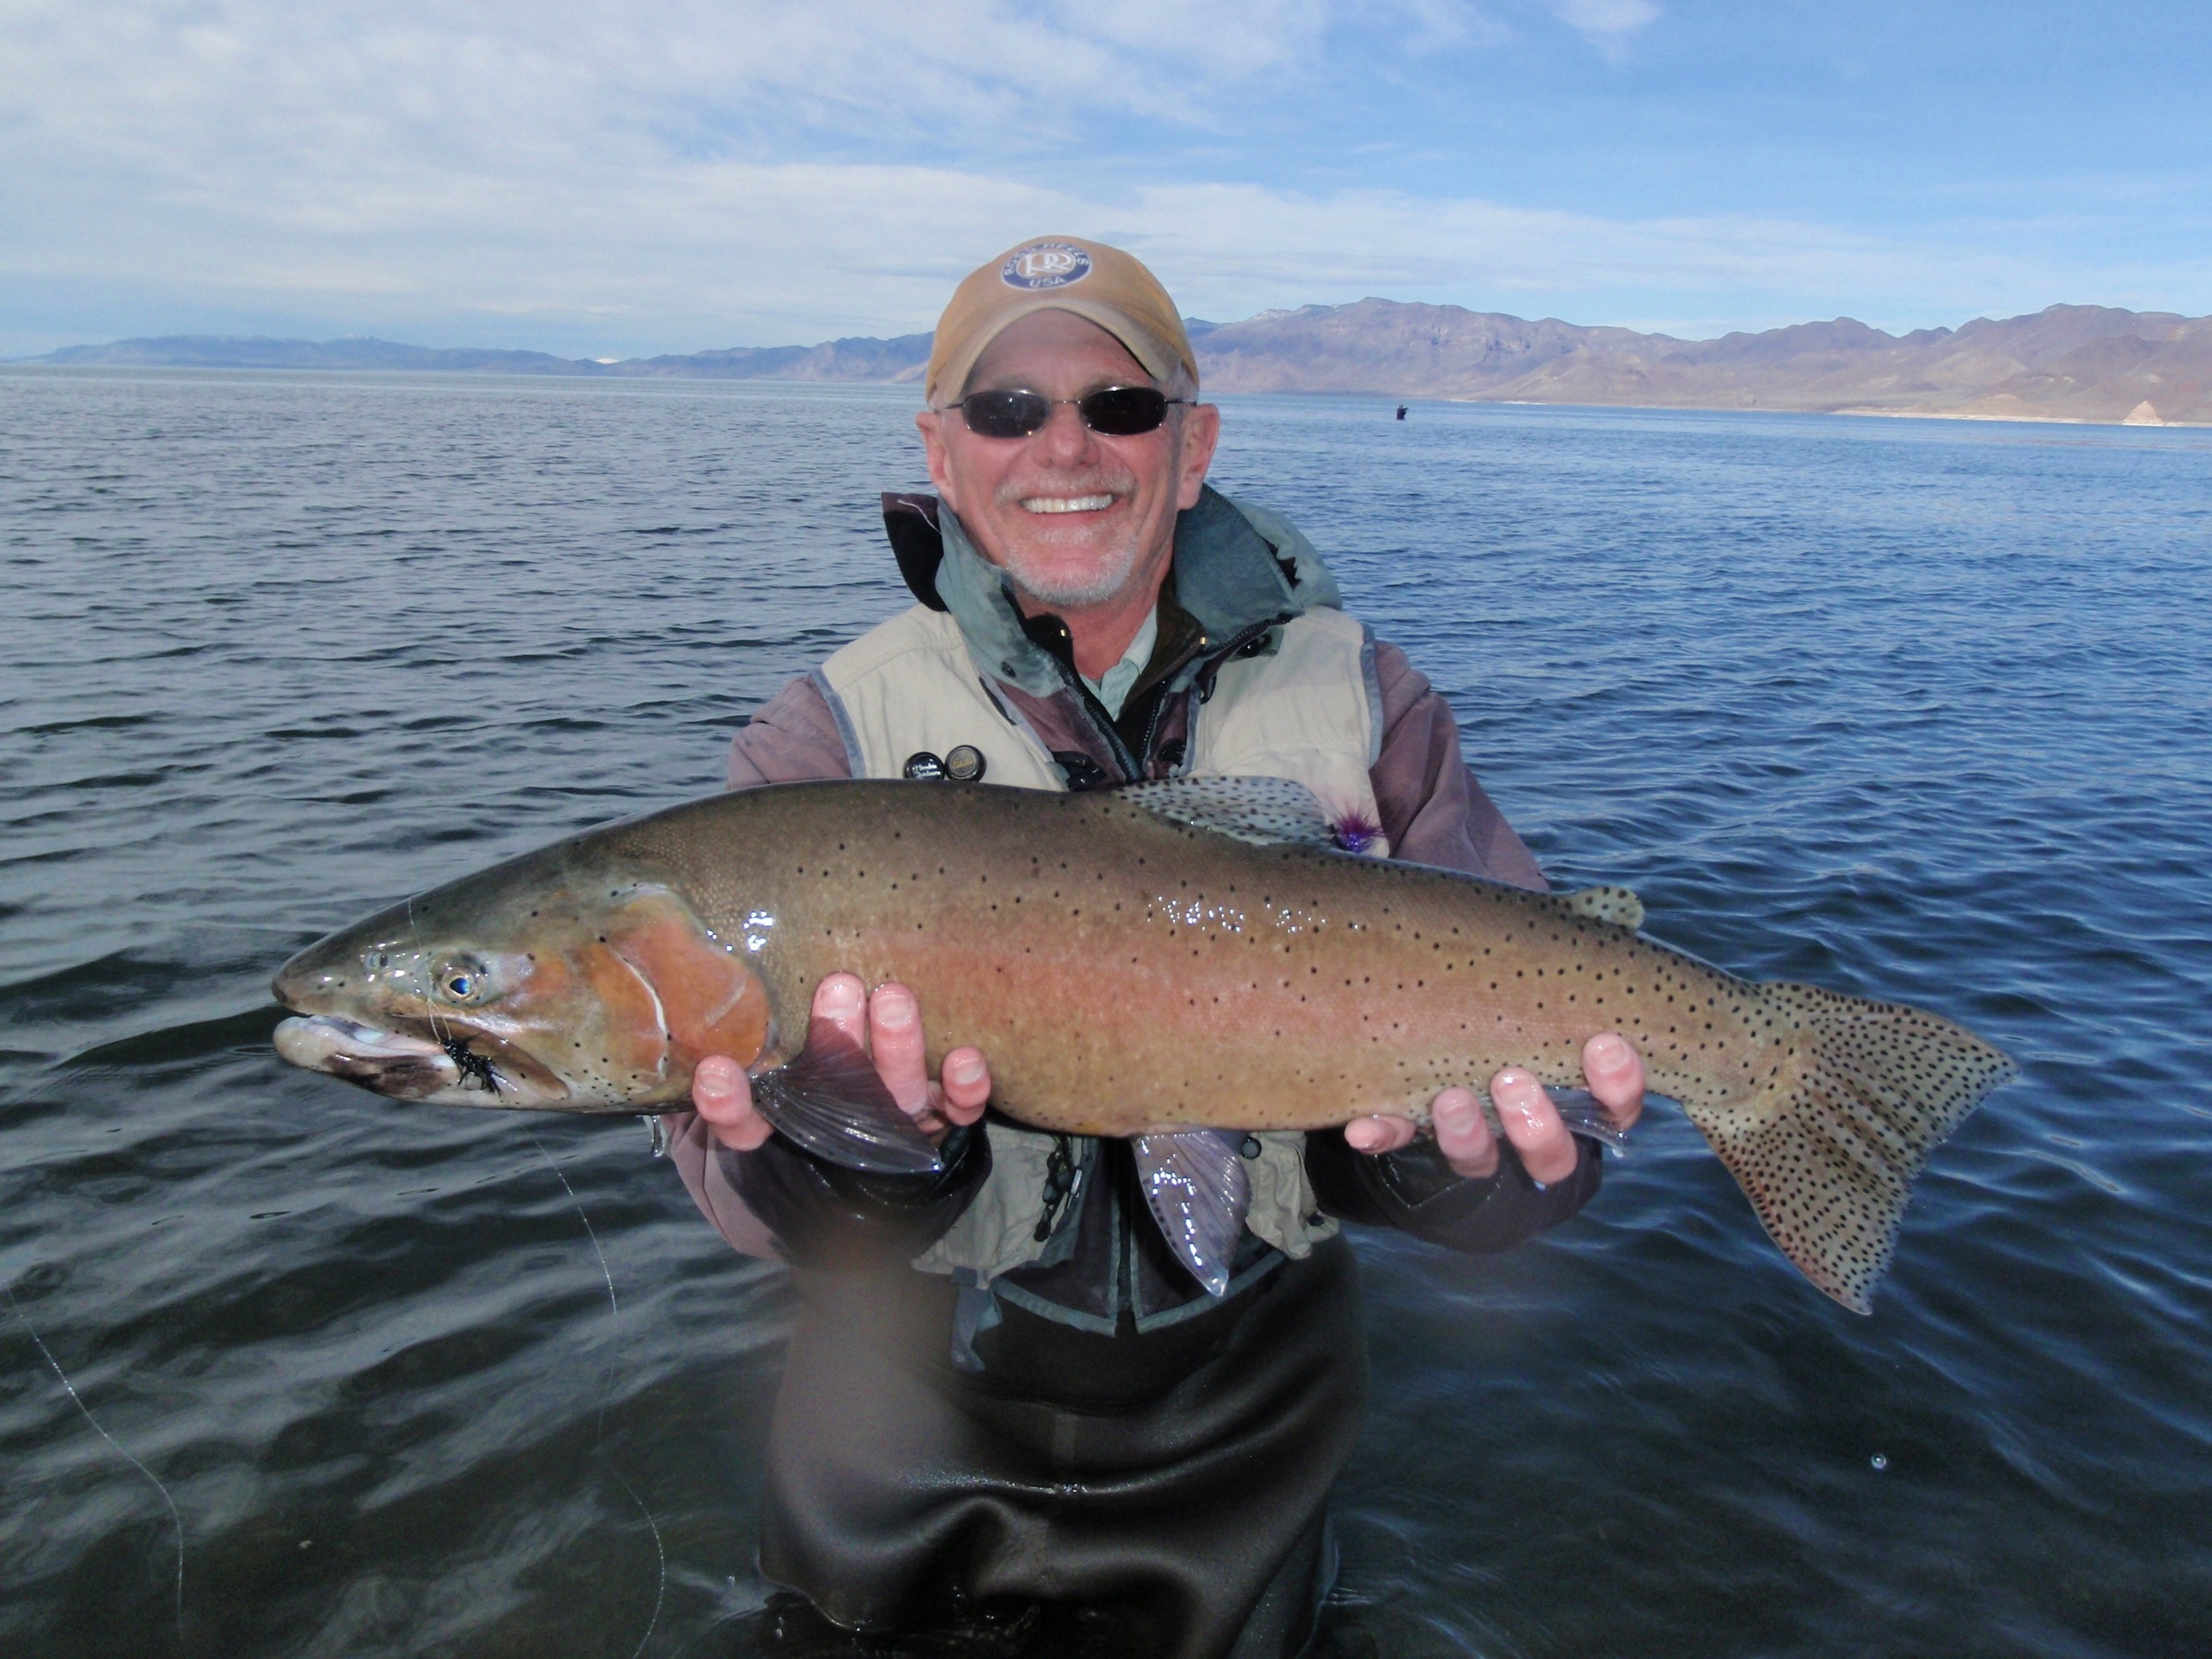 Pyramid Strain of Lahontan Cutthroat Trout